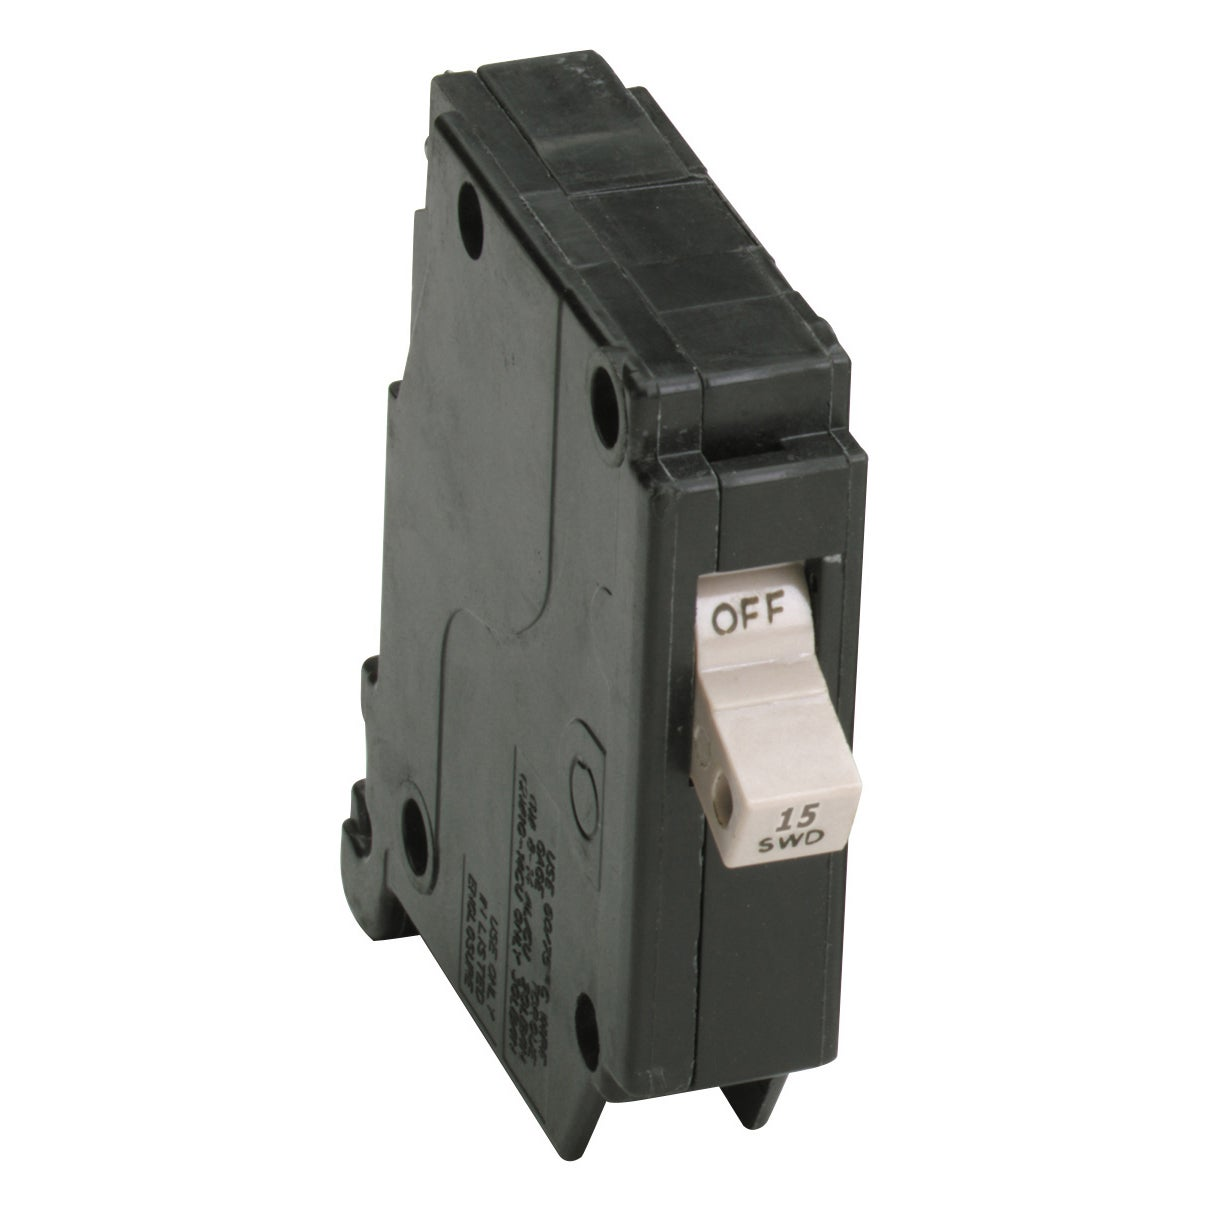 Eaton CHF115CS 15 Amp Cutler Hammer Single Pole Circuit B...